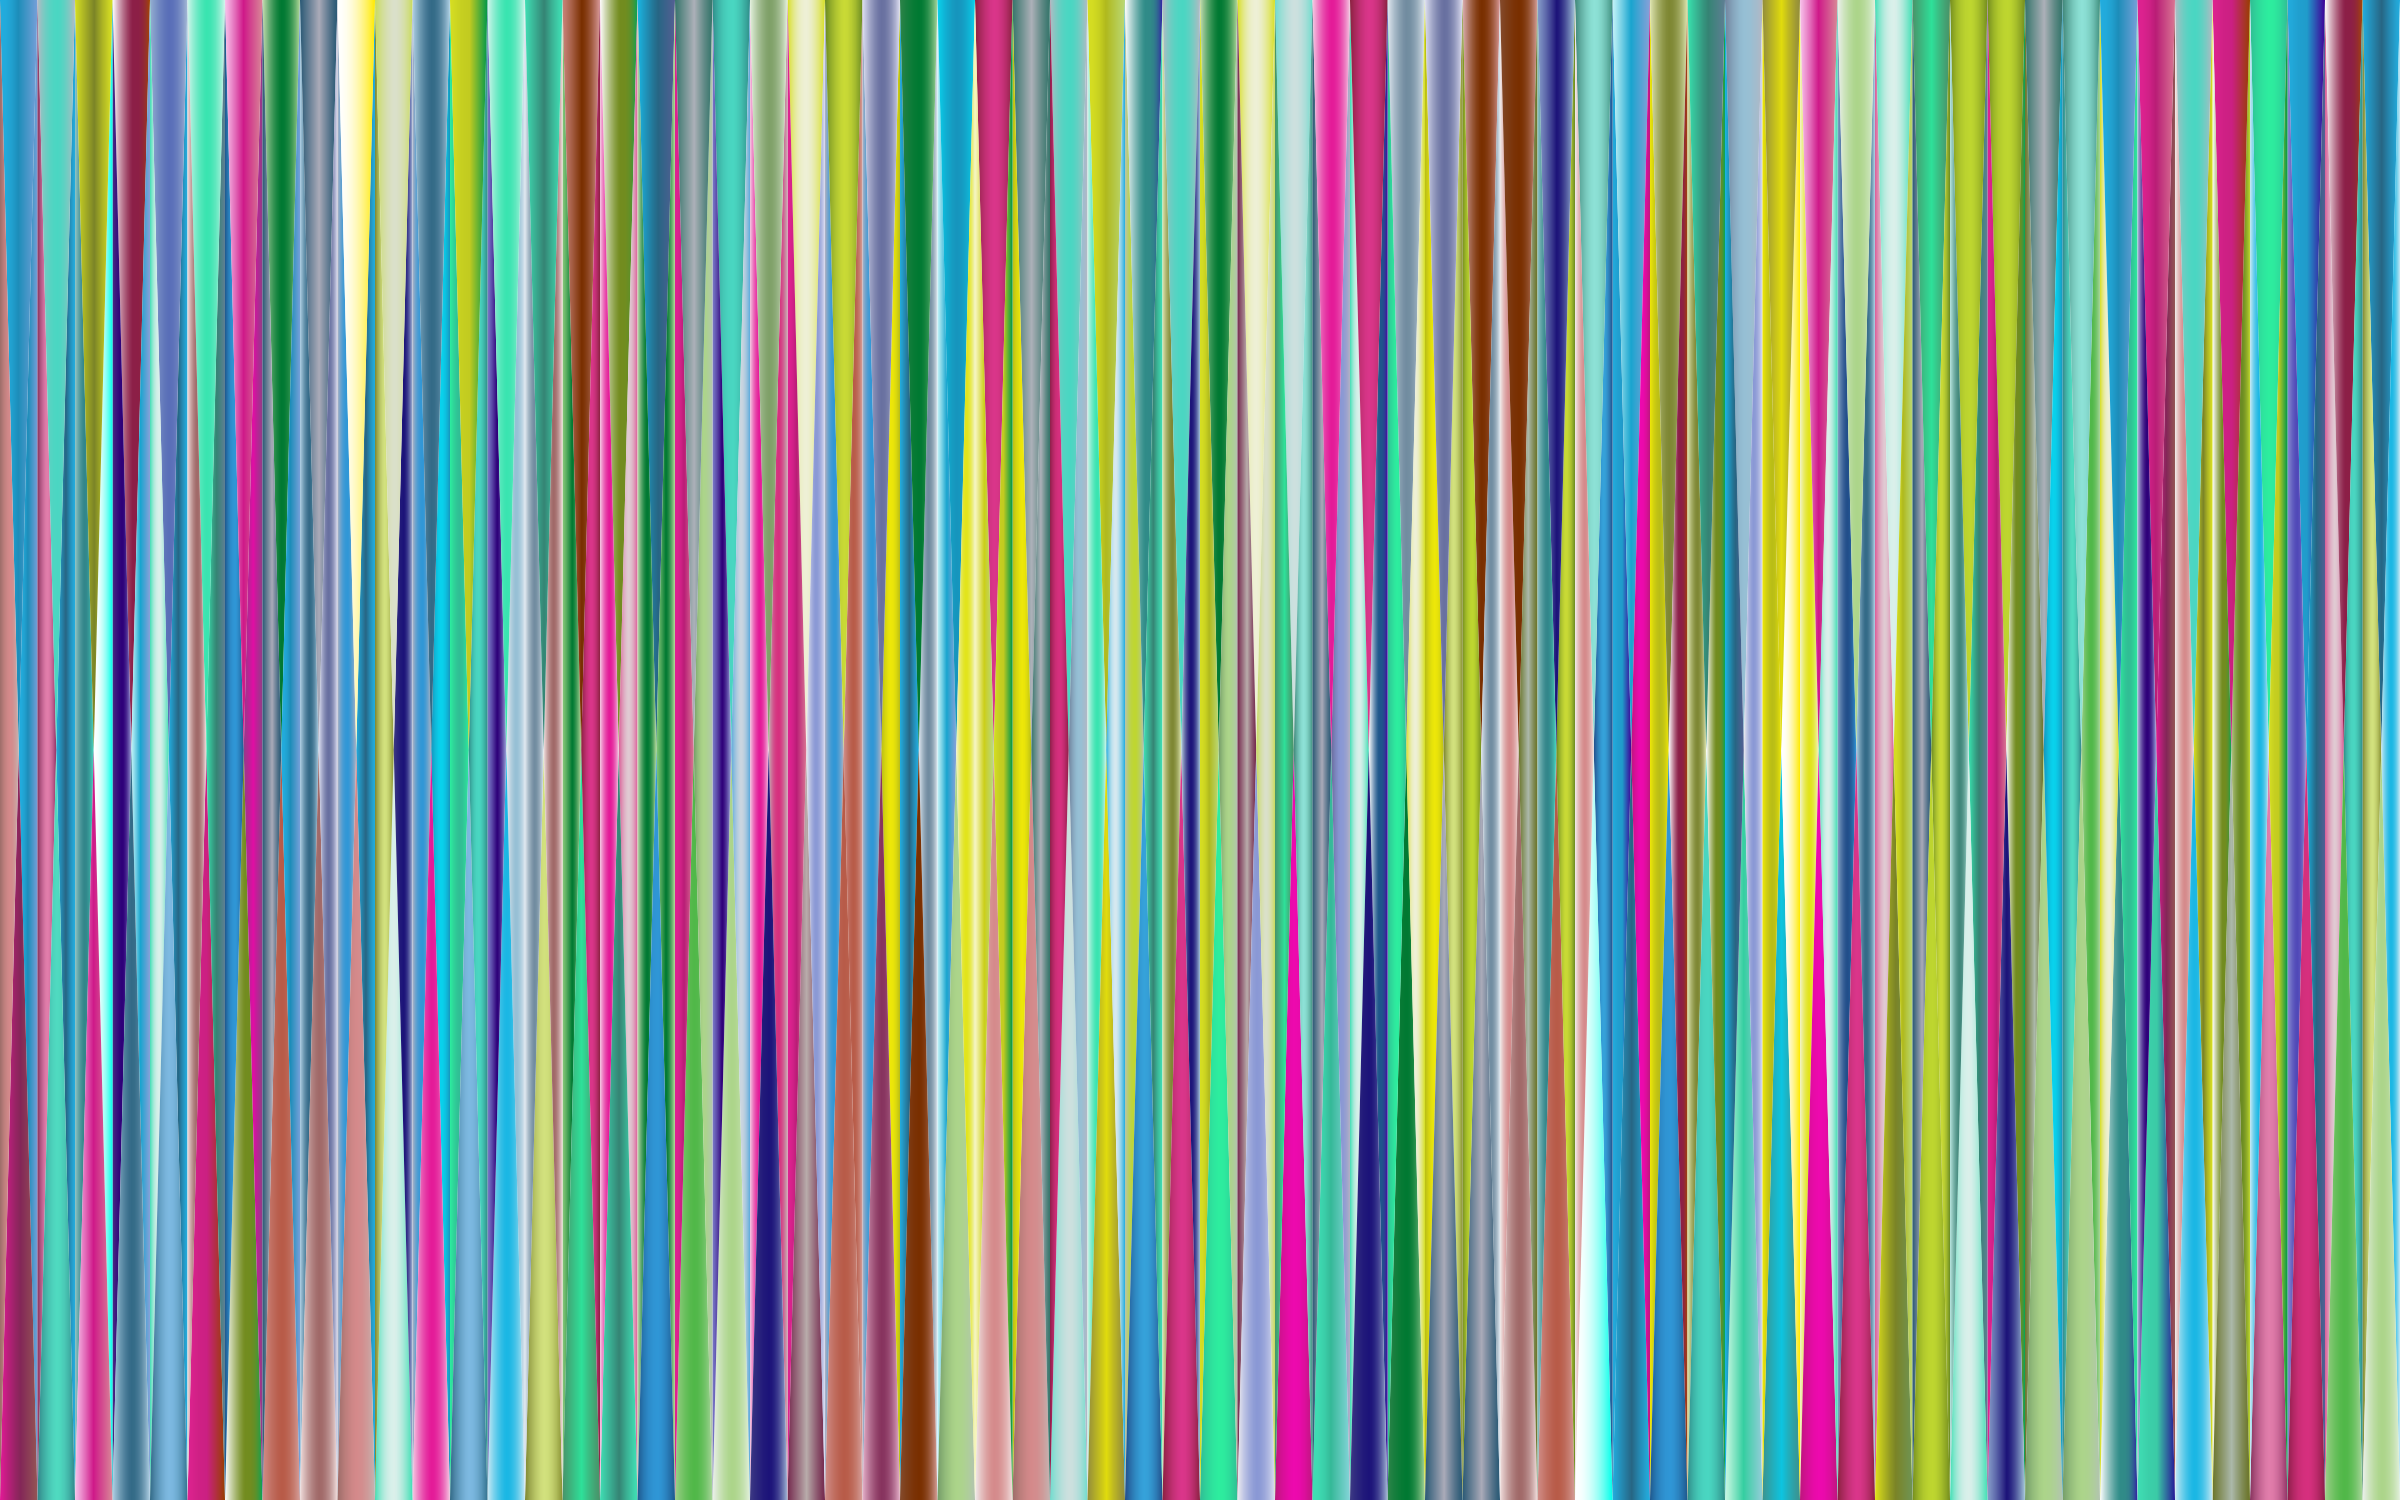 Stylized Striped Background 4 by GDJ